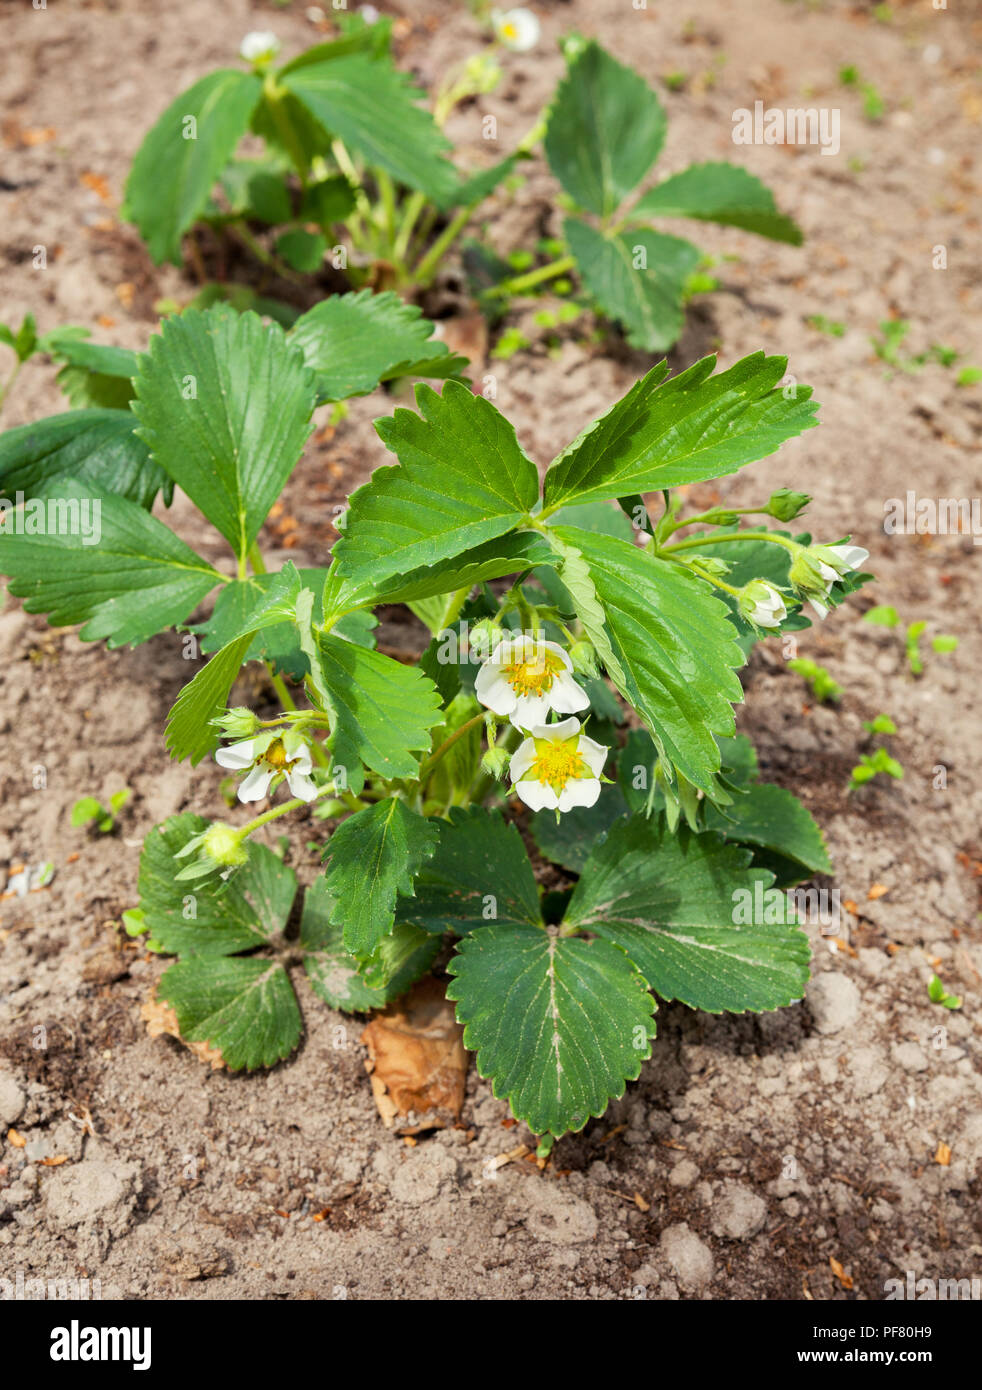 Blossoms Strawberry Bushes With White Flowers Stock Photo 215920357